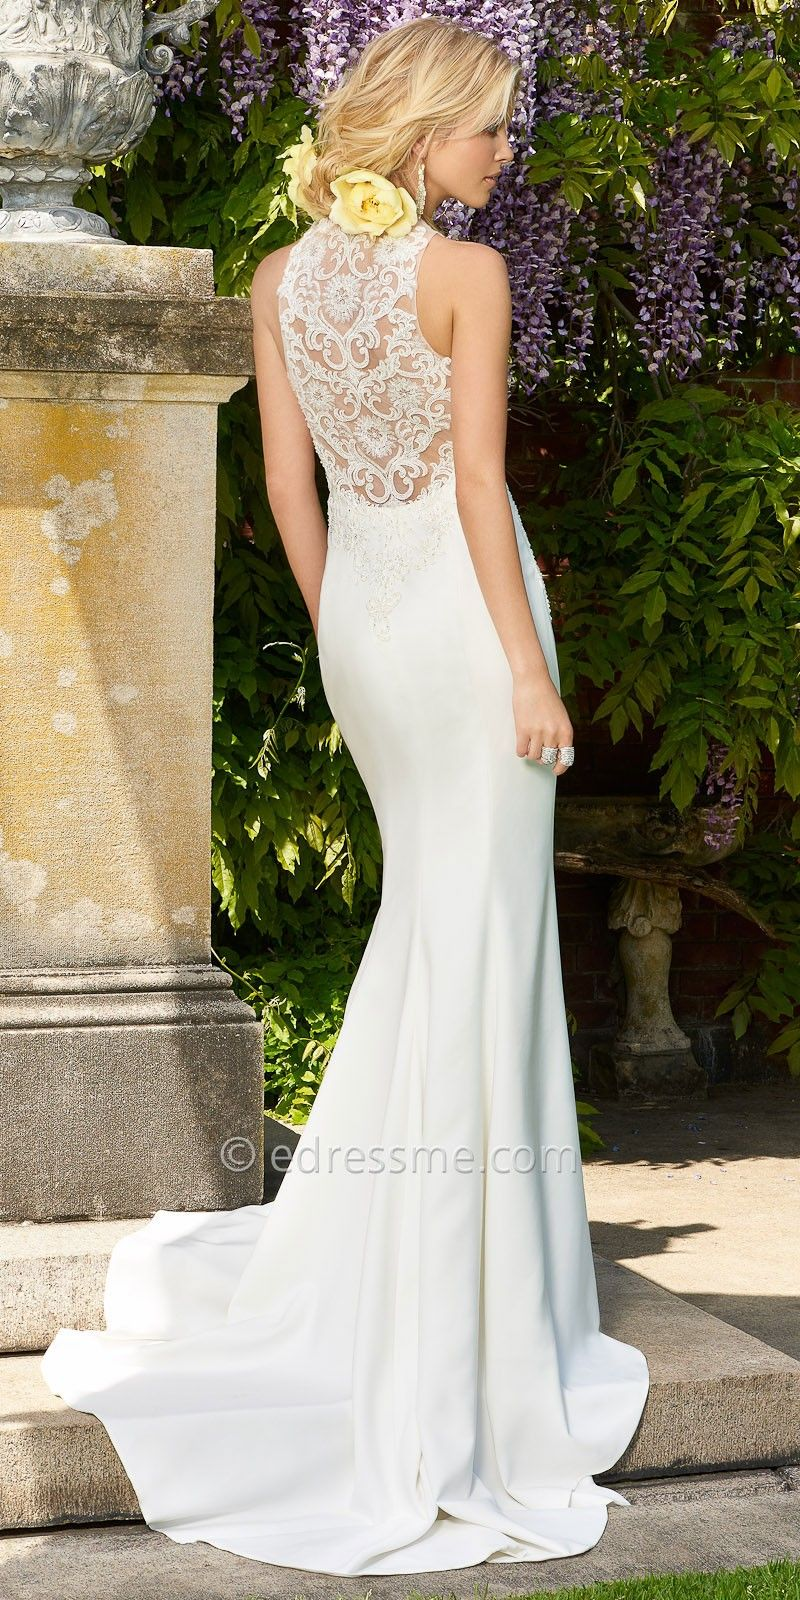 Crepe Racer Back Wedding Dress By Camille La Vie